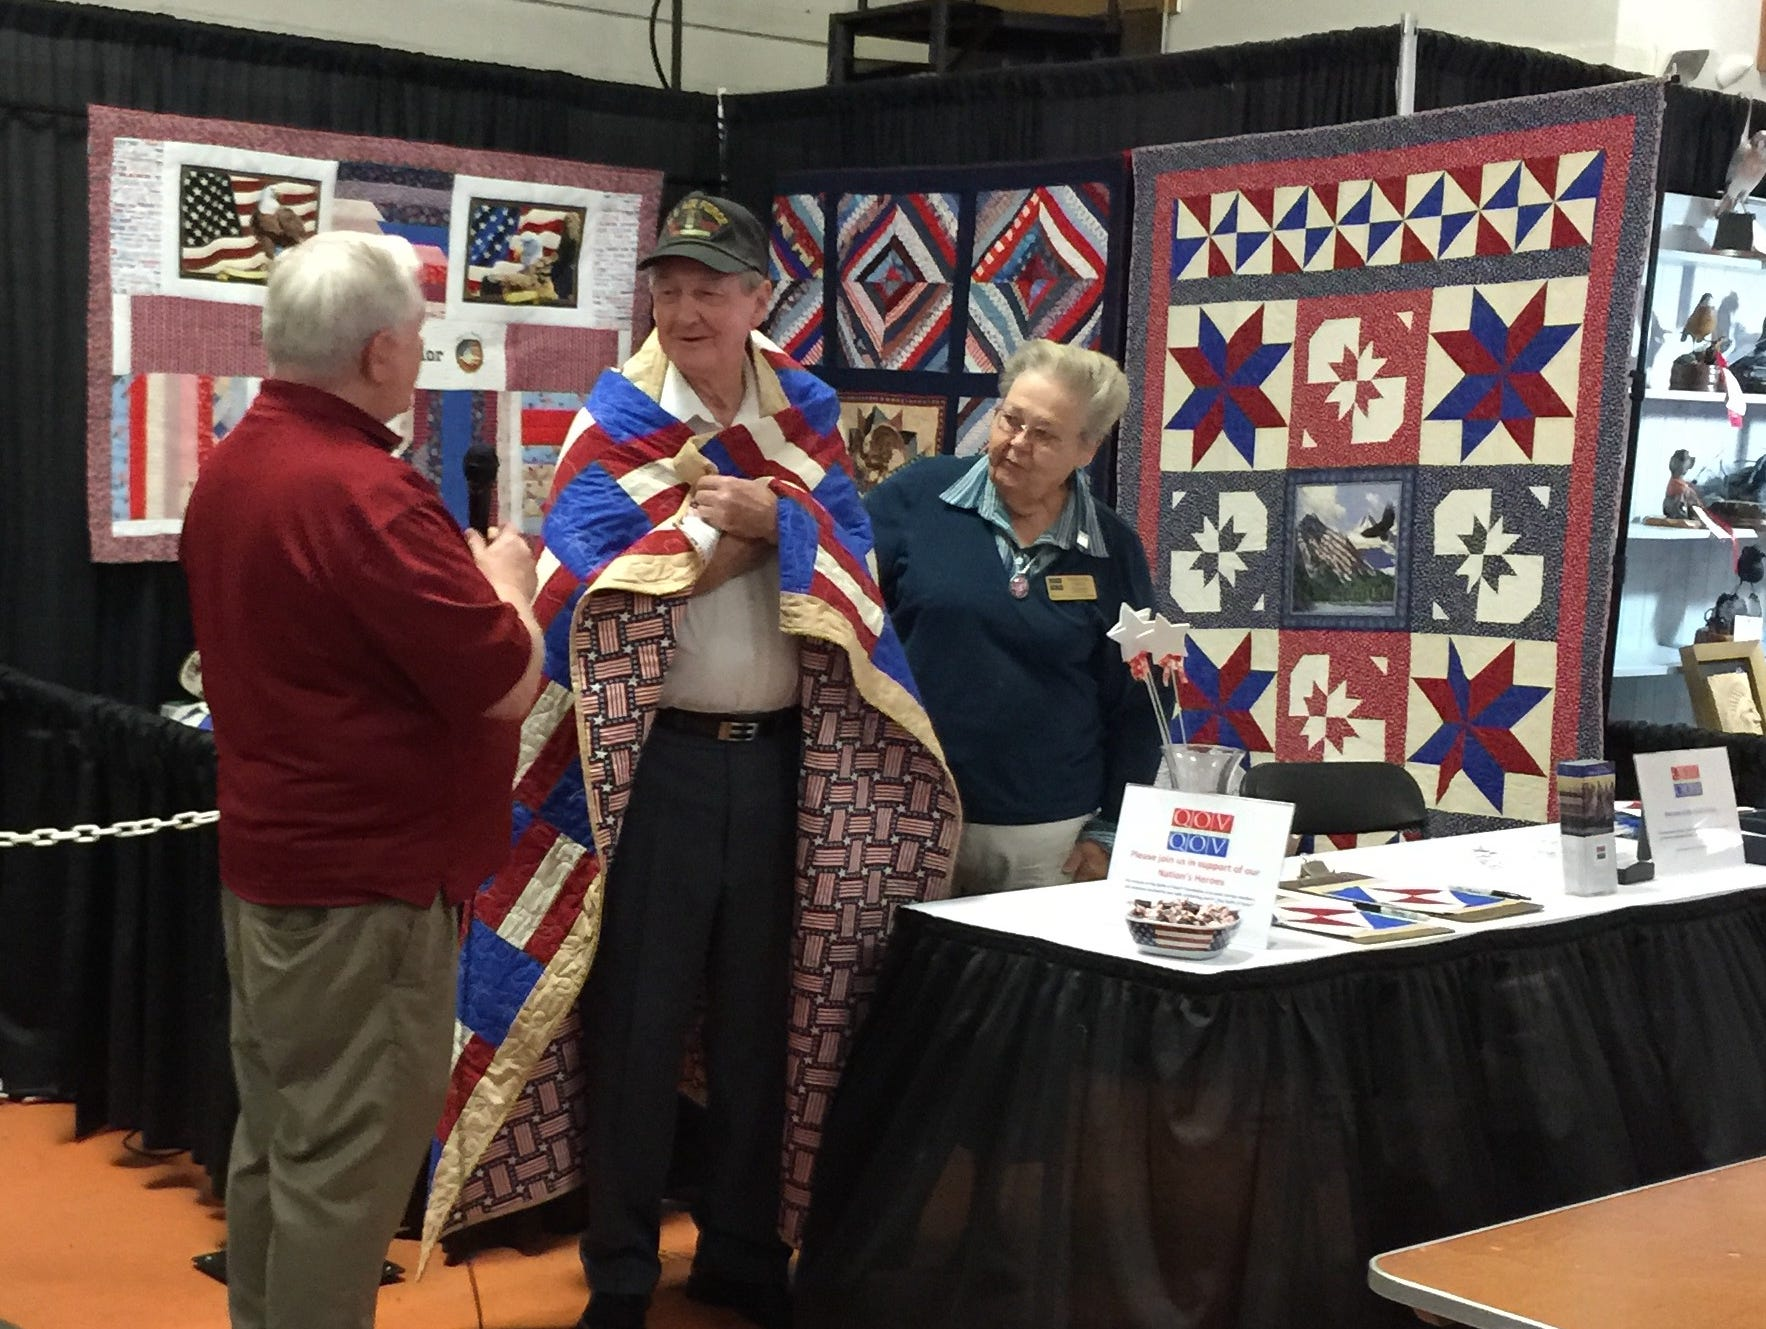 Veteran Raymond Hopper of Knoxville receives a quilt from Quilts of Valor on Saturday at the Tennessee Valley Fair.